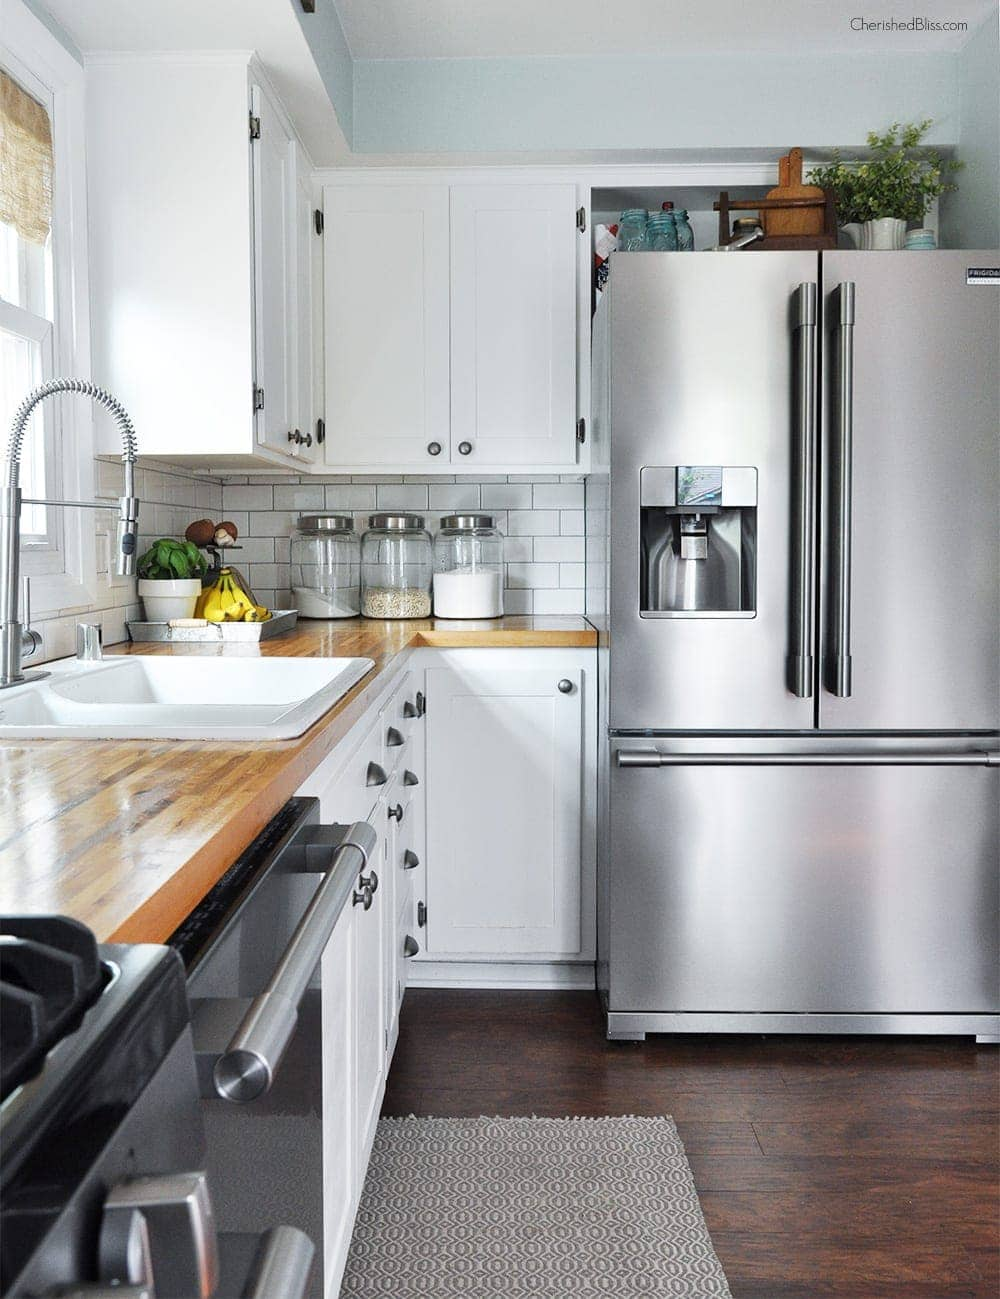 Tips For A Budget Friendly Kitchen Makeover From Cherished Bliss .